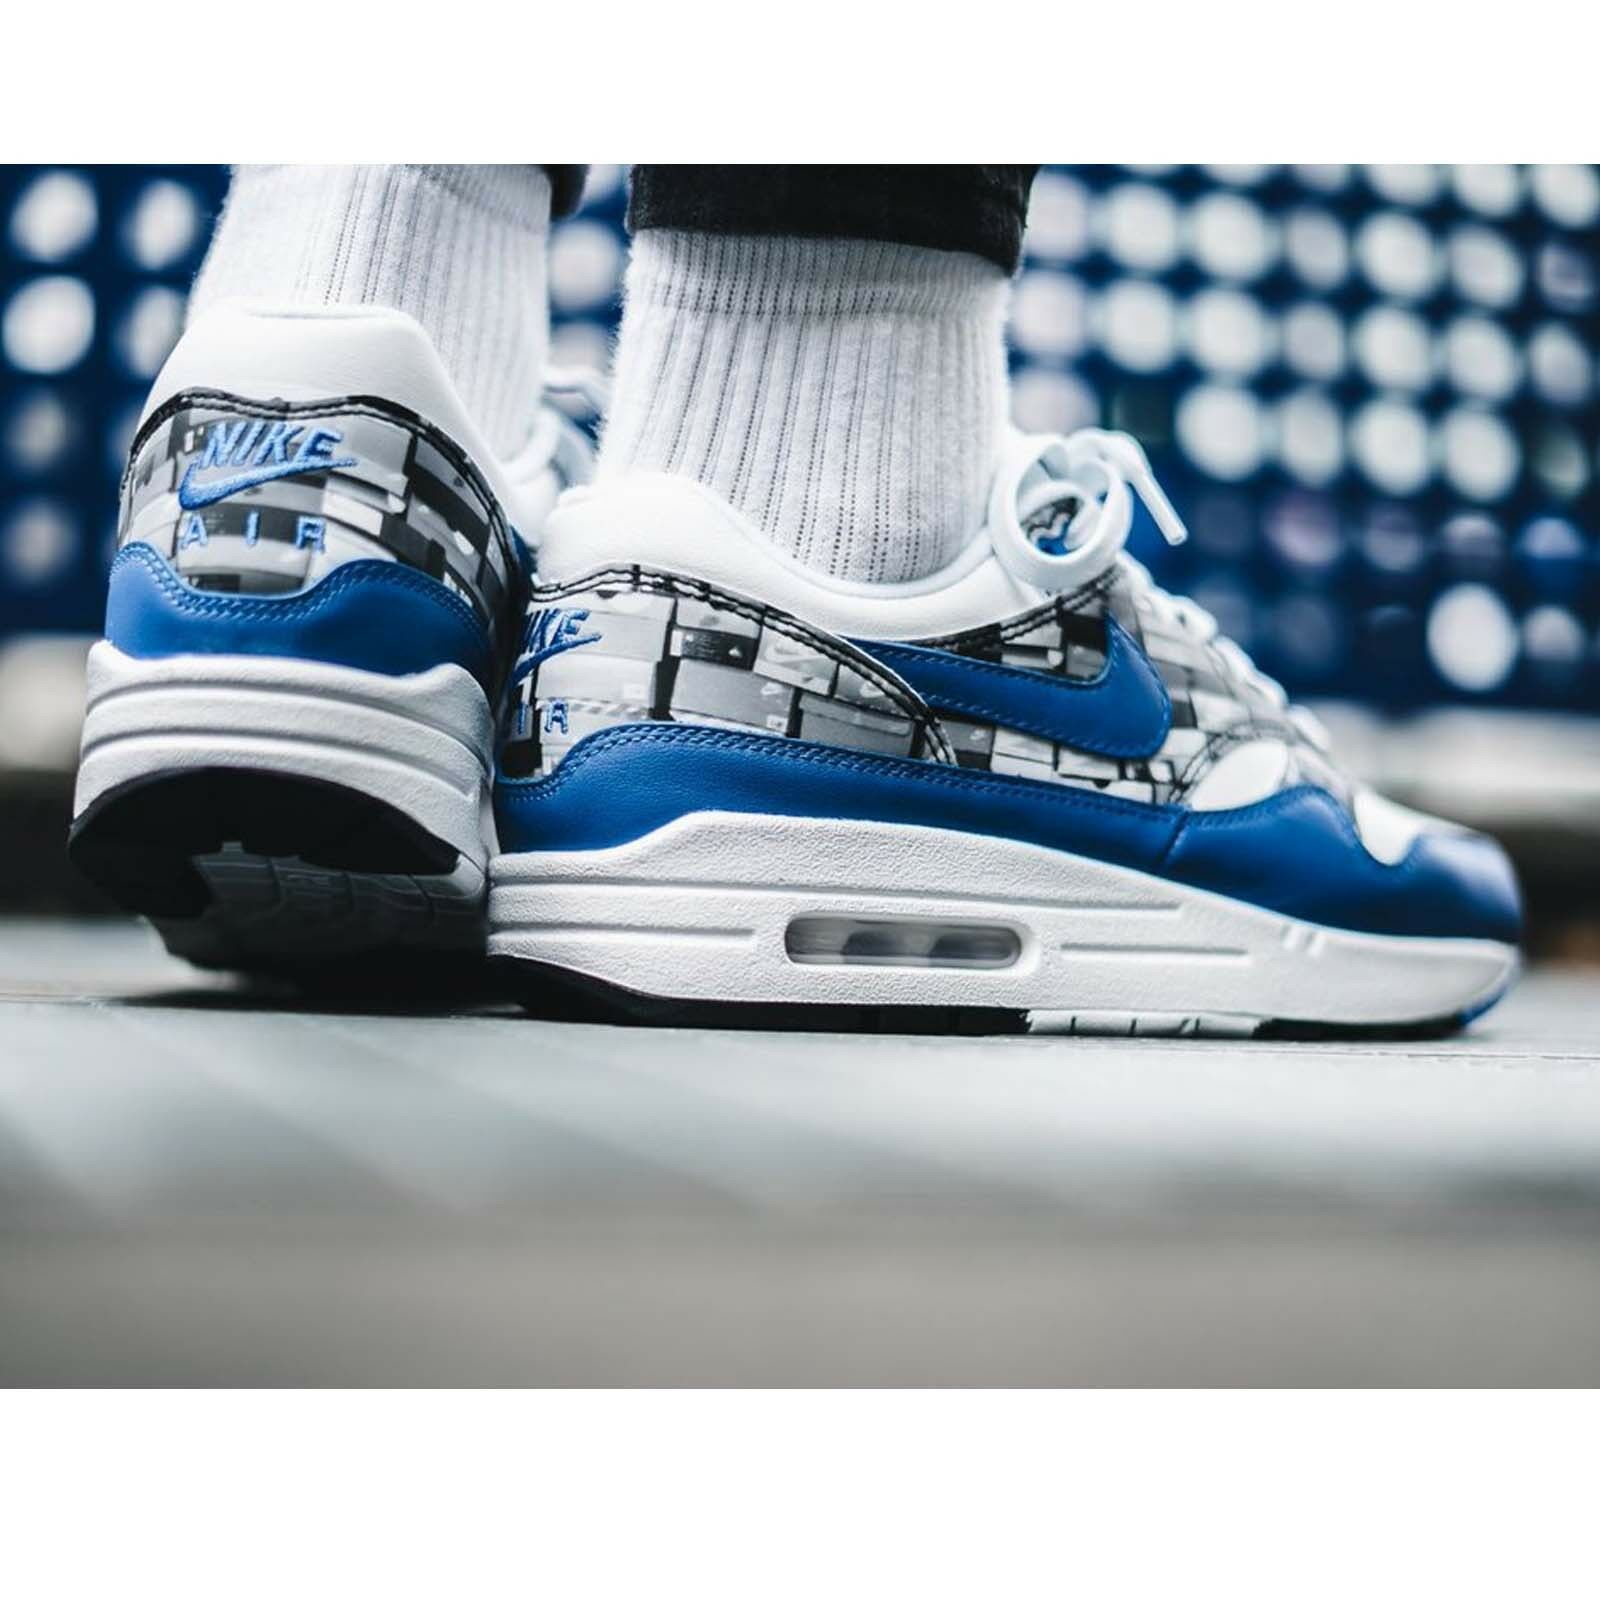 Atmos 1 X Nike Air Max 1 Atmos Print We Love Nike White Blue Royal Mens Shoes AQ0927-100 07a859